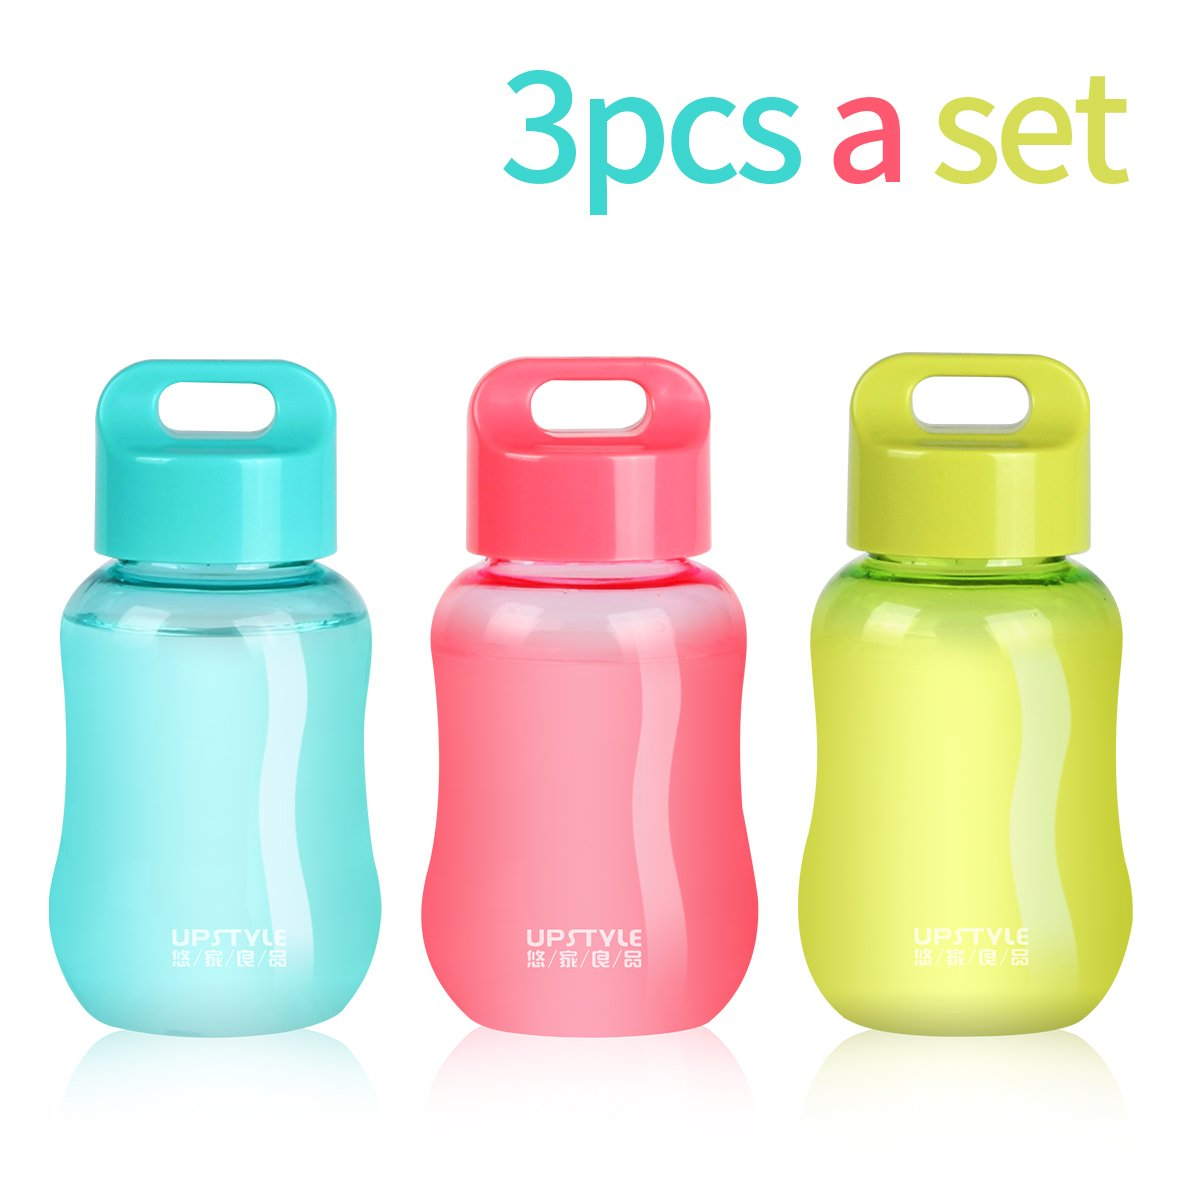 UPSTYLE Mini Small Plastic Coffee Travel Mugs Wide Mouth Portable Sports Water Bottle Cup for Milk, Coffee, Tea, Juice, Kitchen Small Storage Bottles, just 180ml(6oz), 3pcs a set (3 colors)